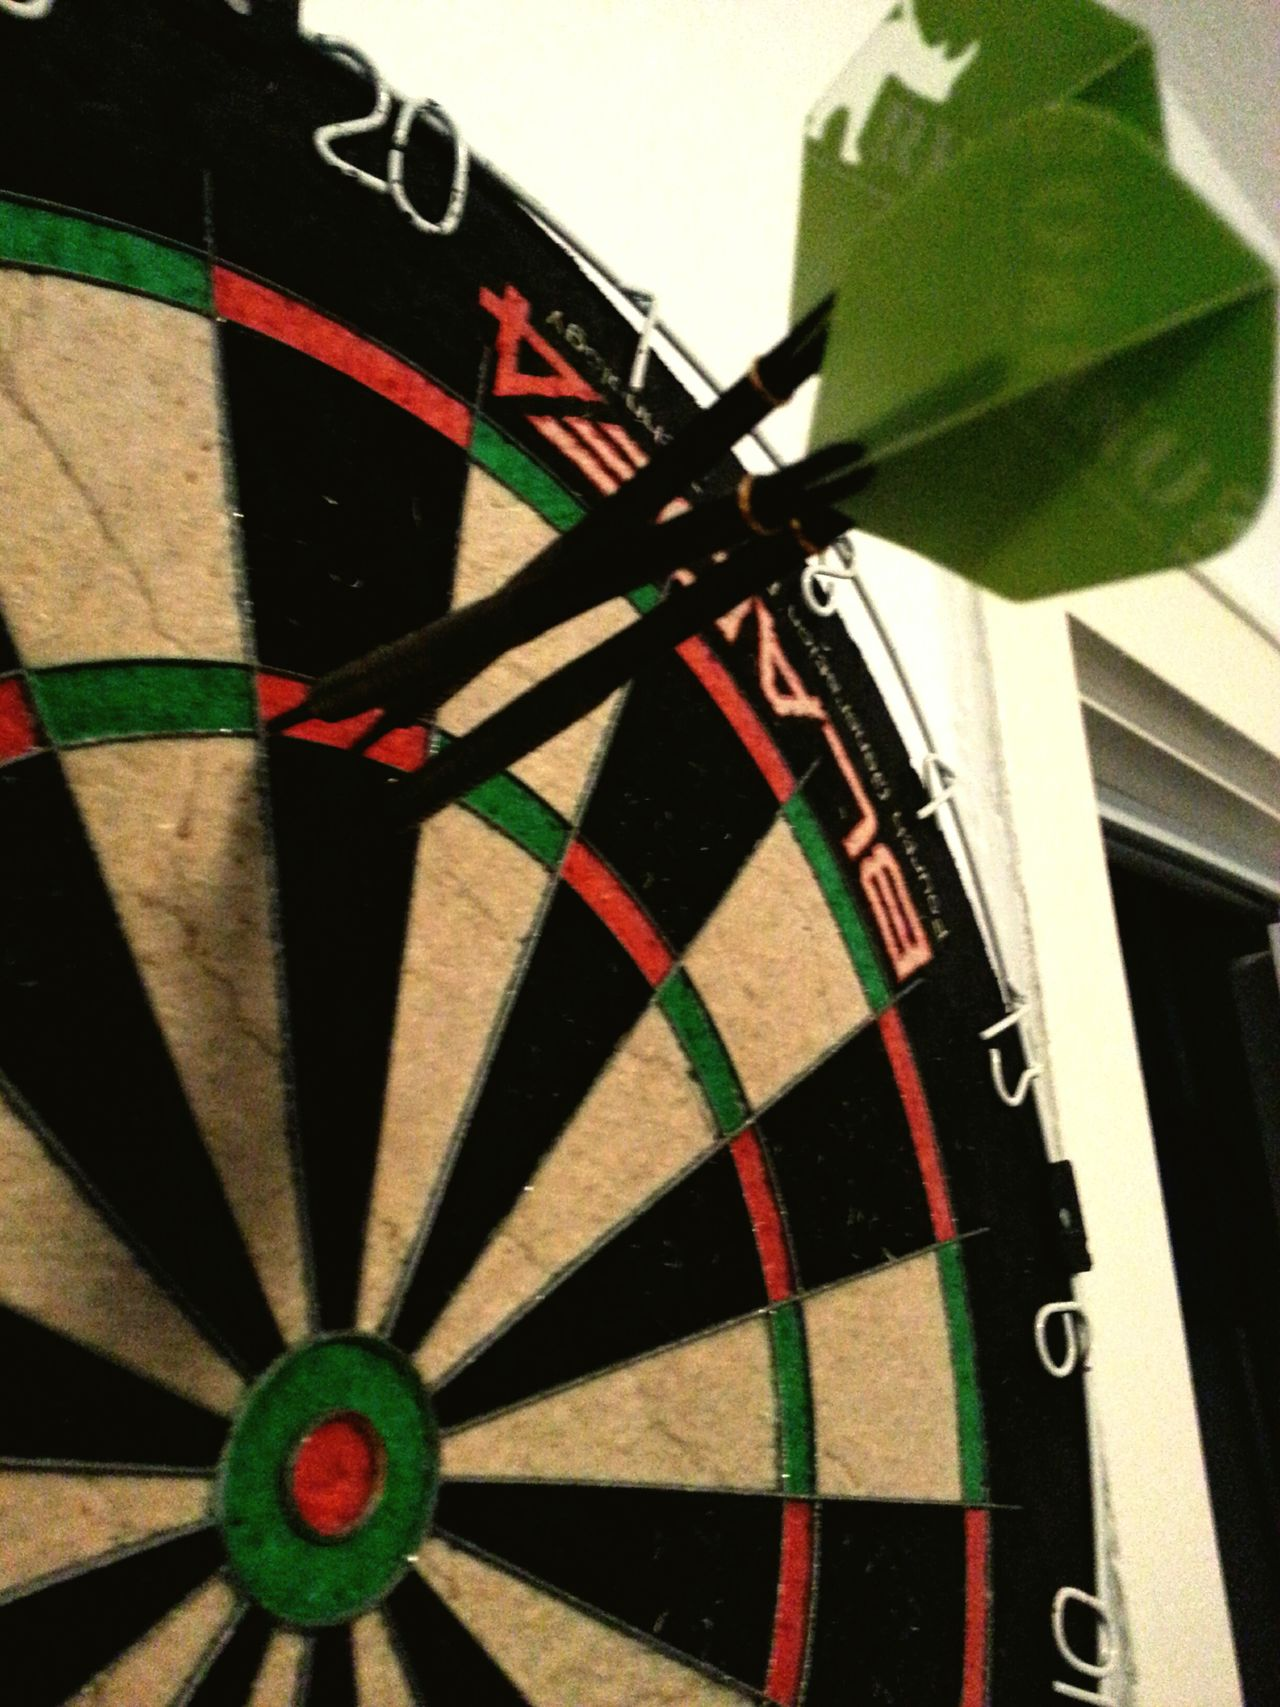 New equipment, new style, more precision Darts Target Harrows SuperGrip Rhinos Precision Concentration Handmadedarts